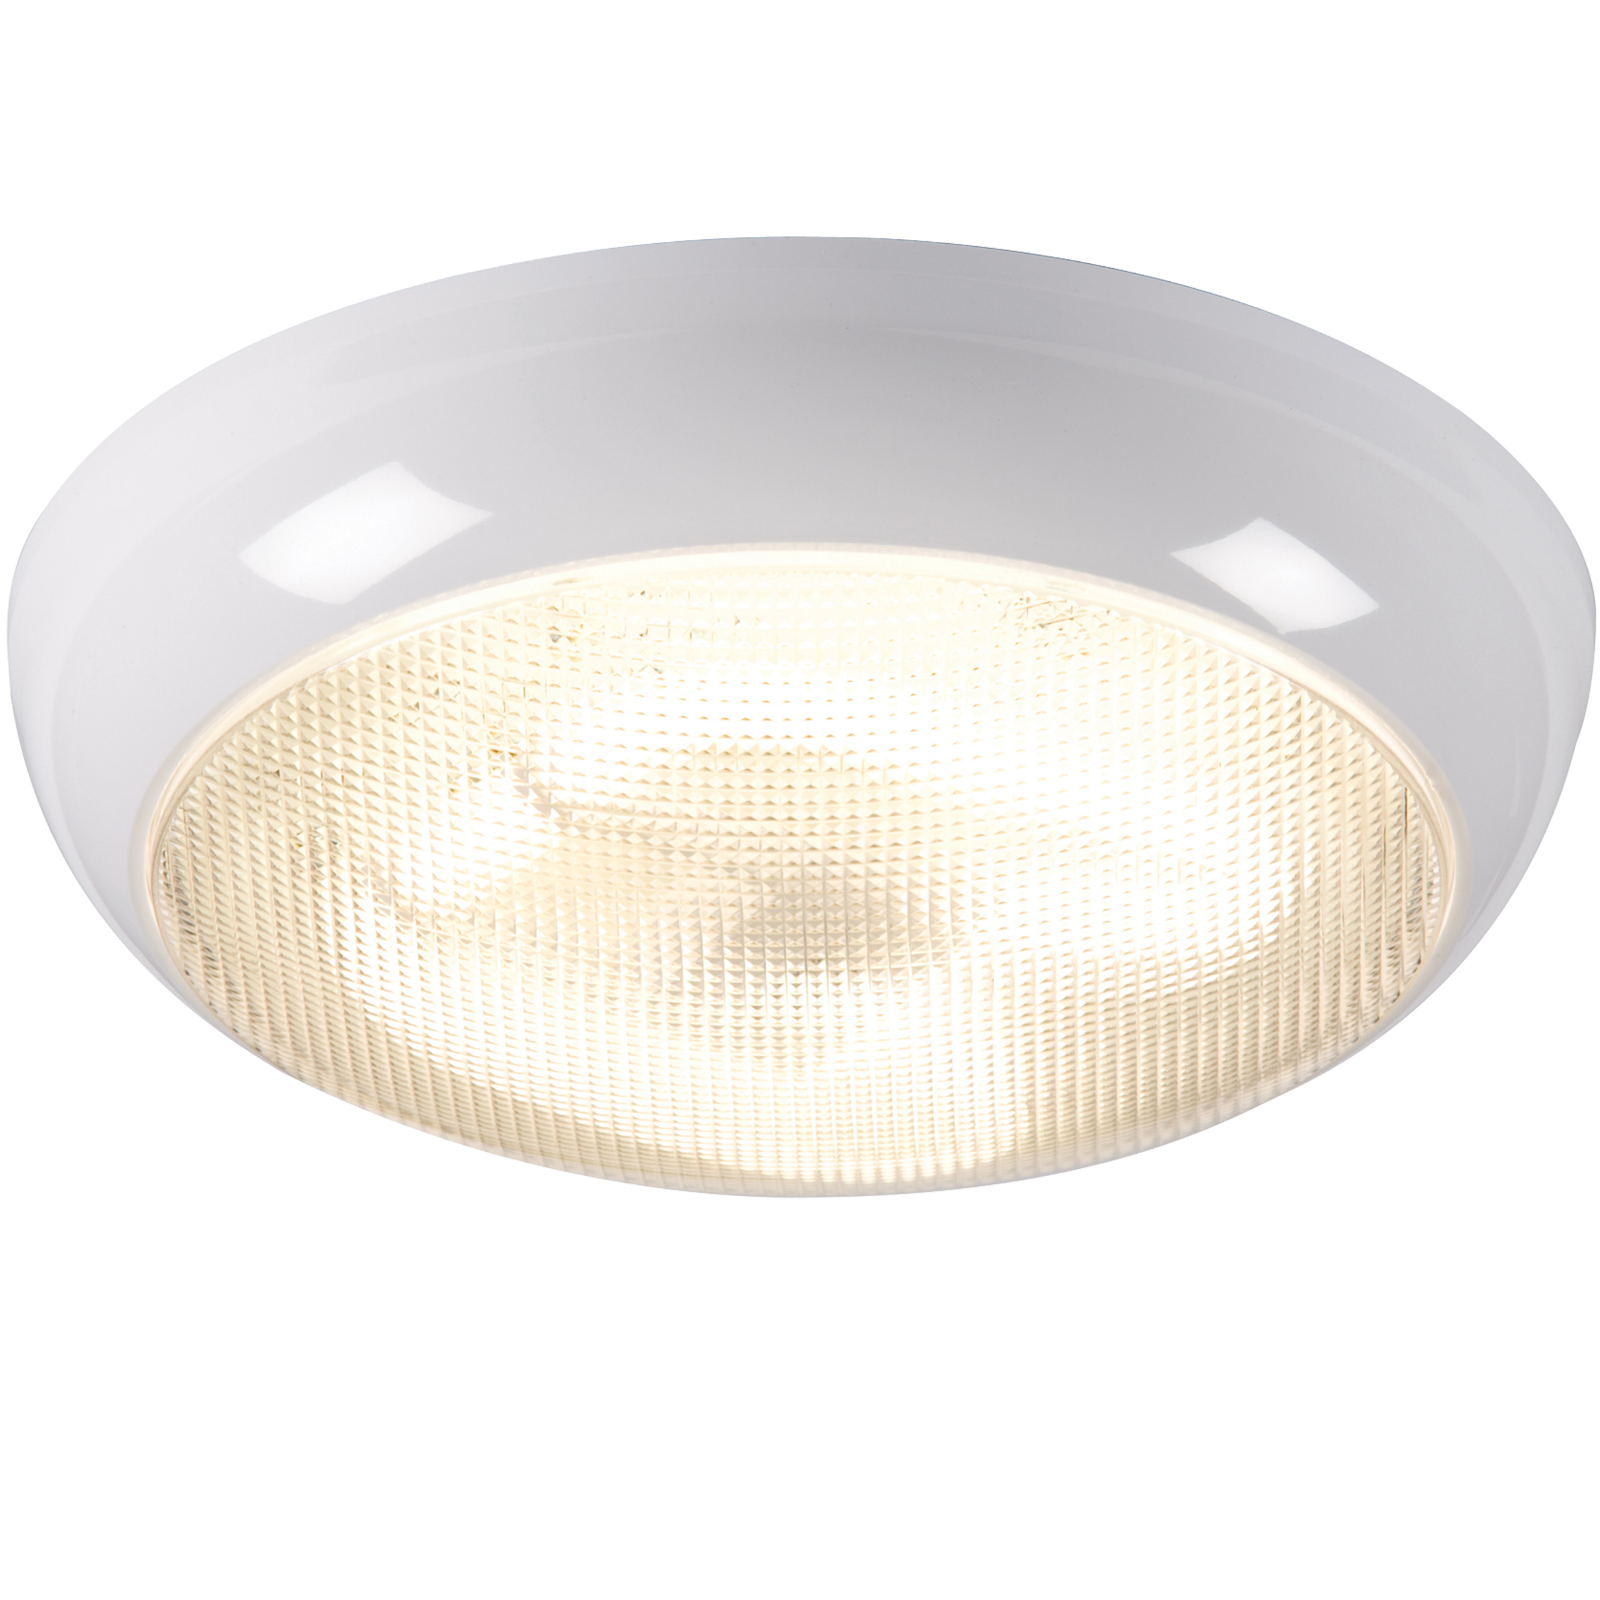 IP44 28W HF Emergency Polo Bulkhead with Prismatic Diffuser and White Base